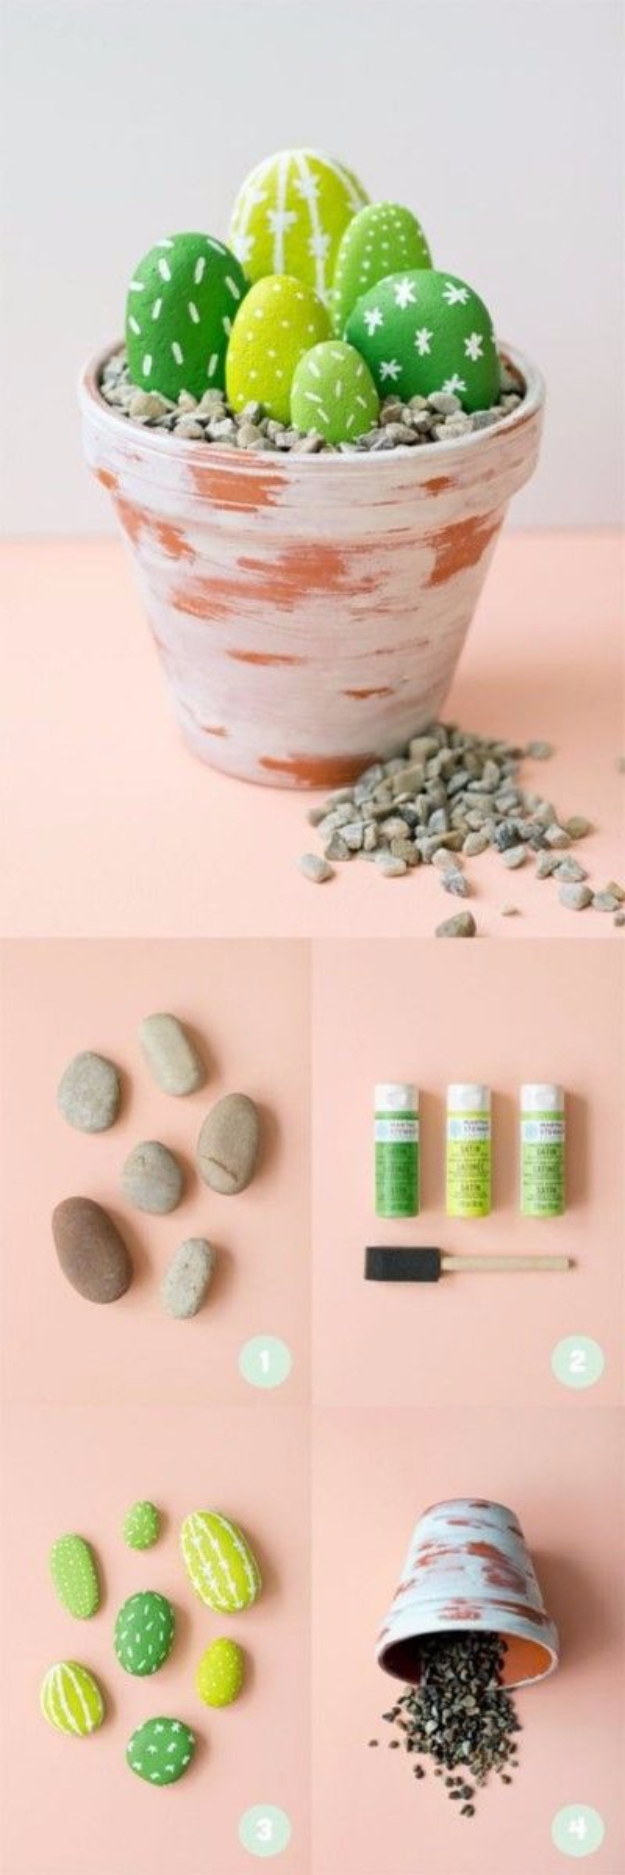 Pebble and Stone Crafts - Painted Cactus Rocks - DIY Ideas Using Rocks, Stones and Pebble Art - Mosaics, Craft Projects, Home Decor, Furniture and DIY Gifts You Can Make On A Budget #crafts